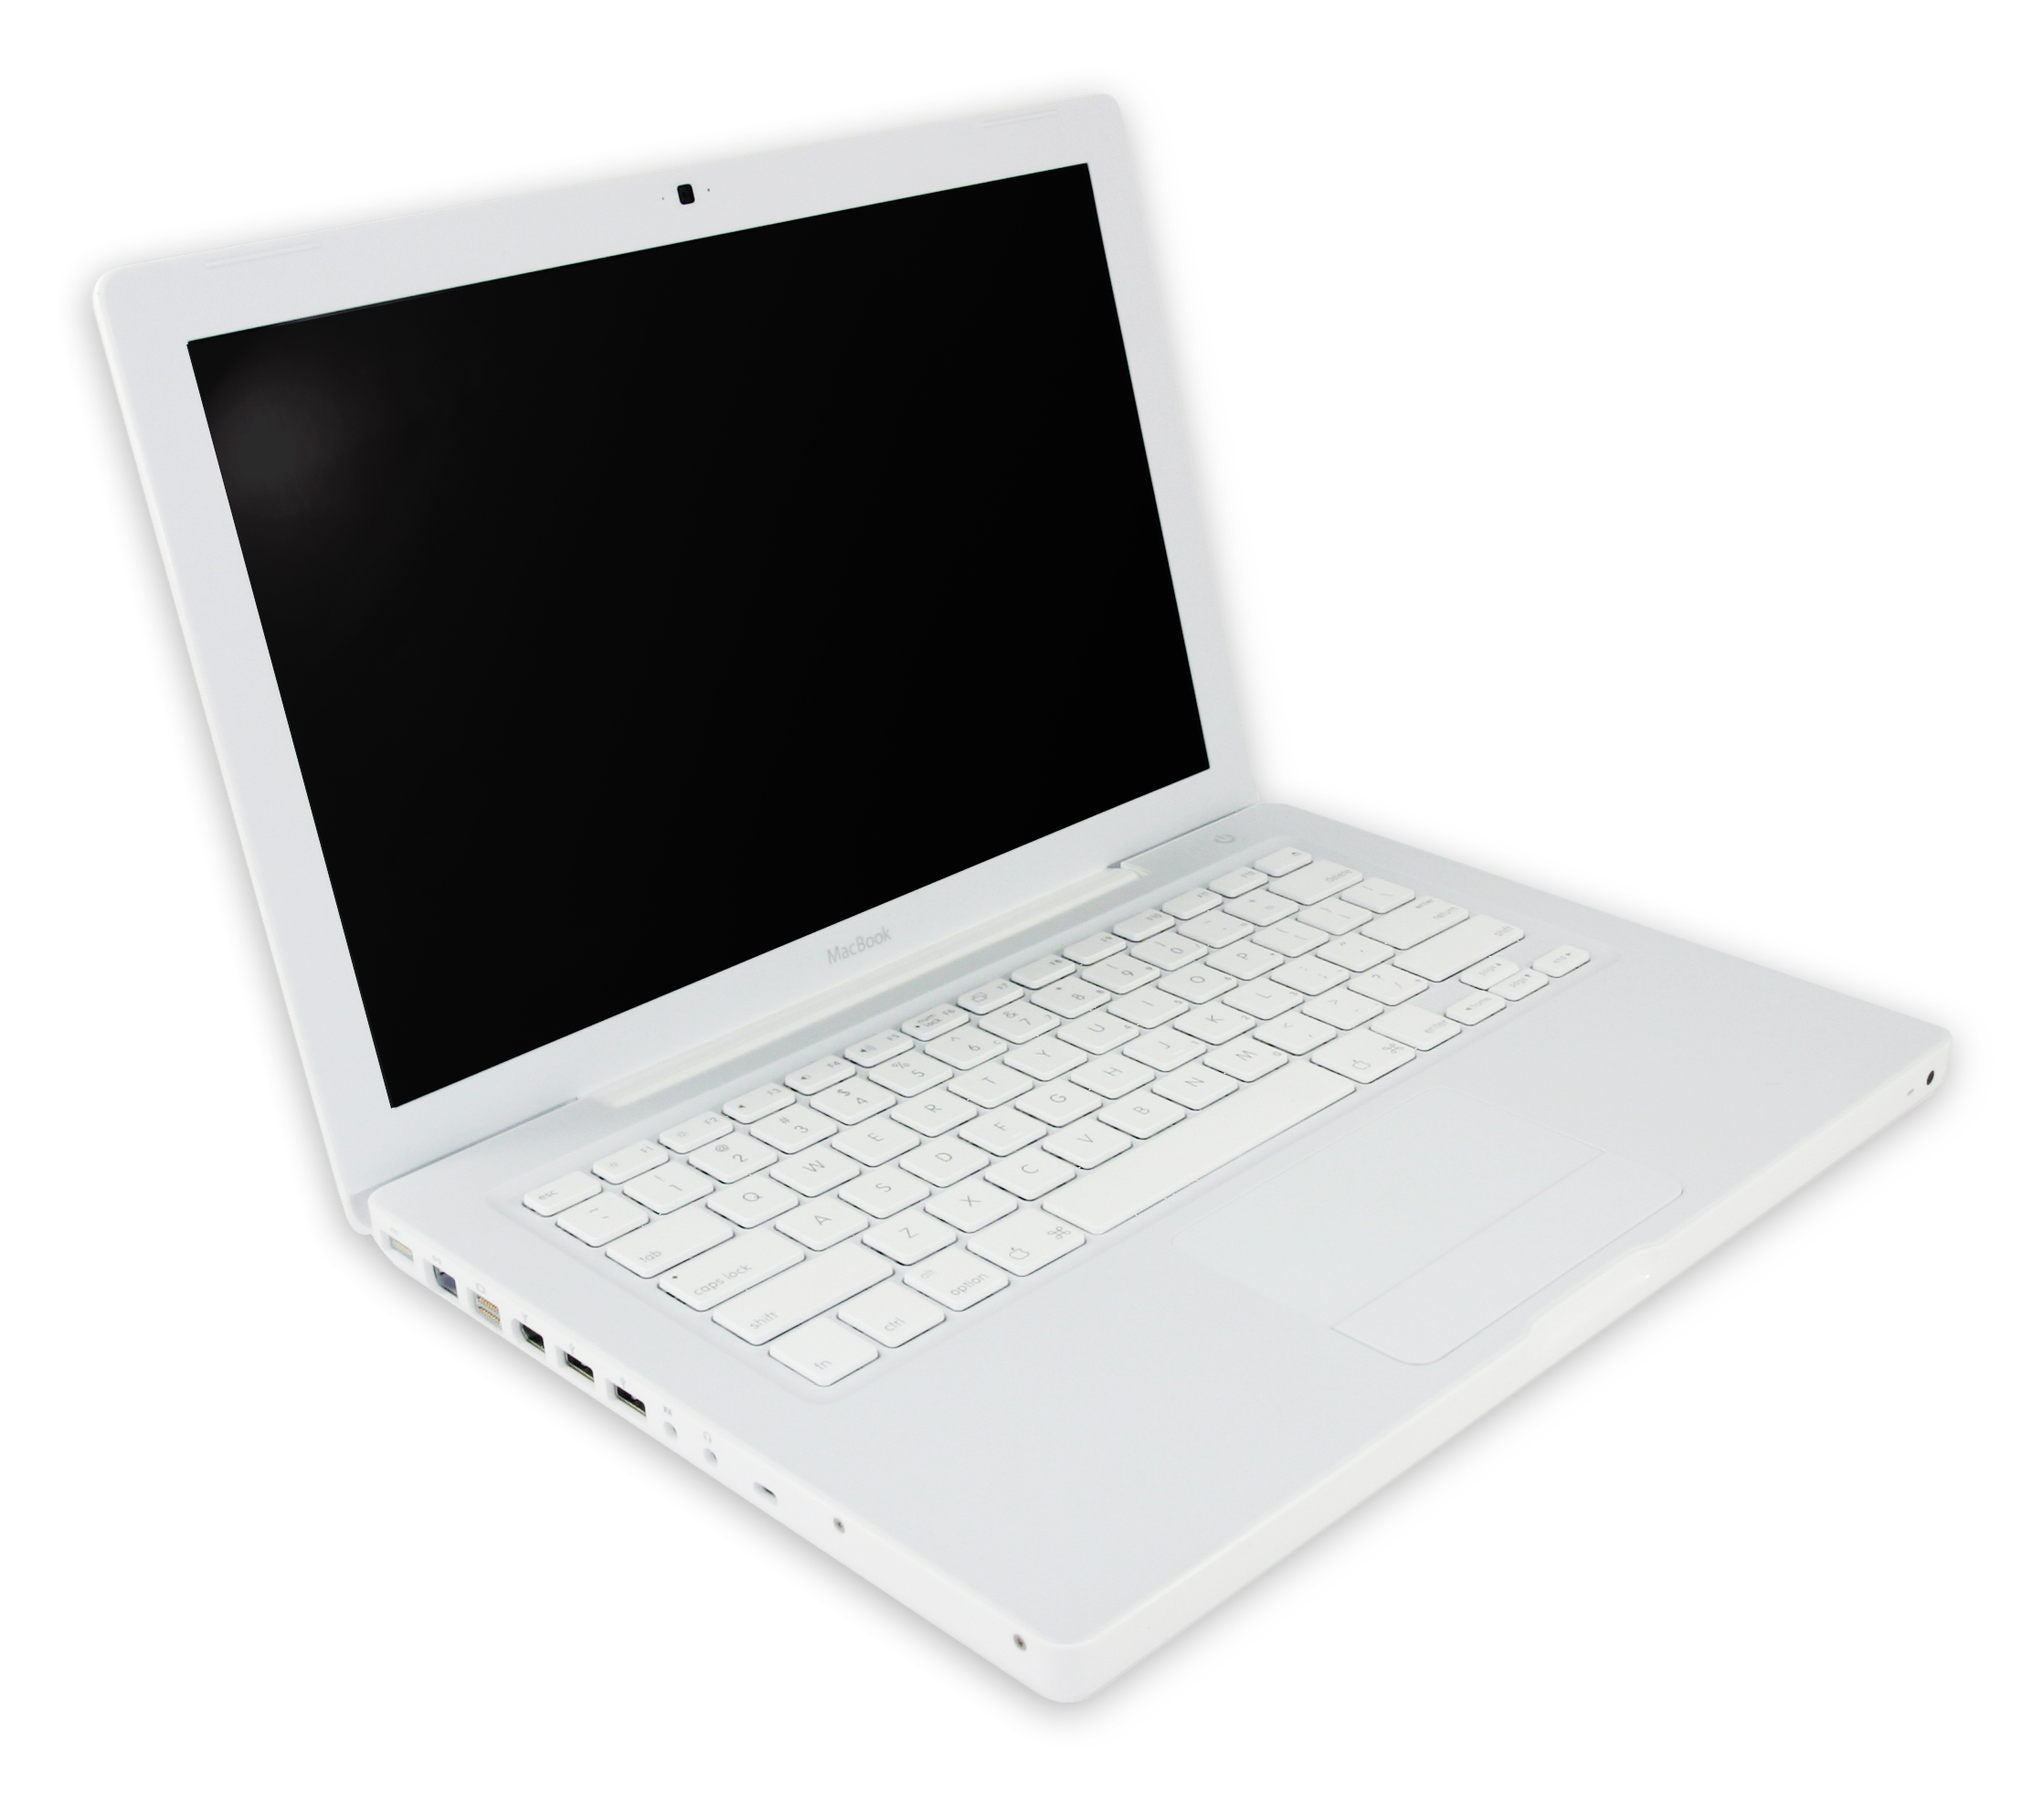 http://upload.wikimedia.org/wikipedia/commons/1/11/Macbook_white_redjar_20060603.jpg